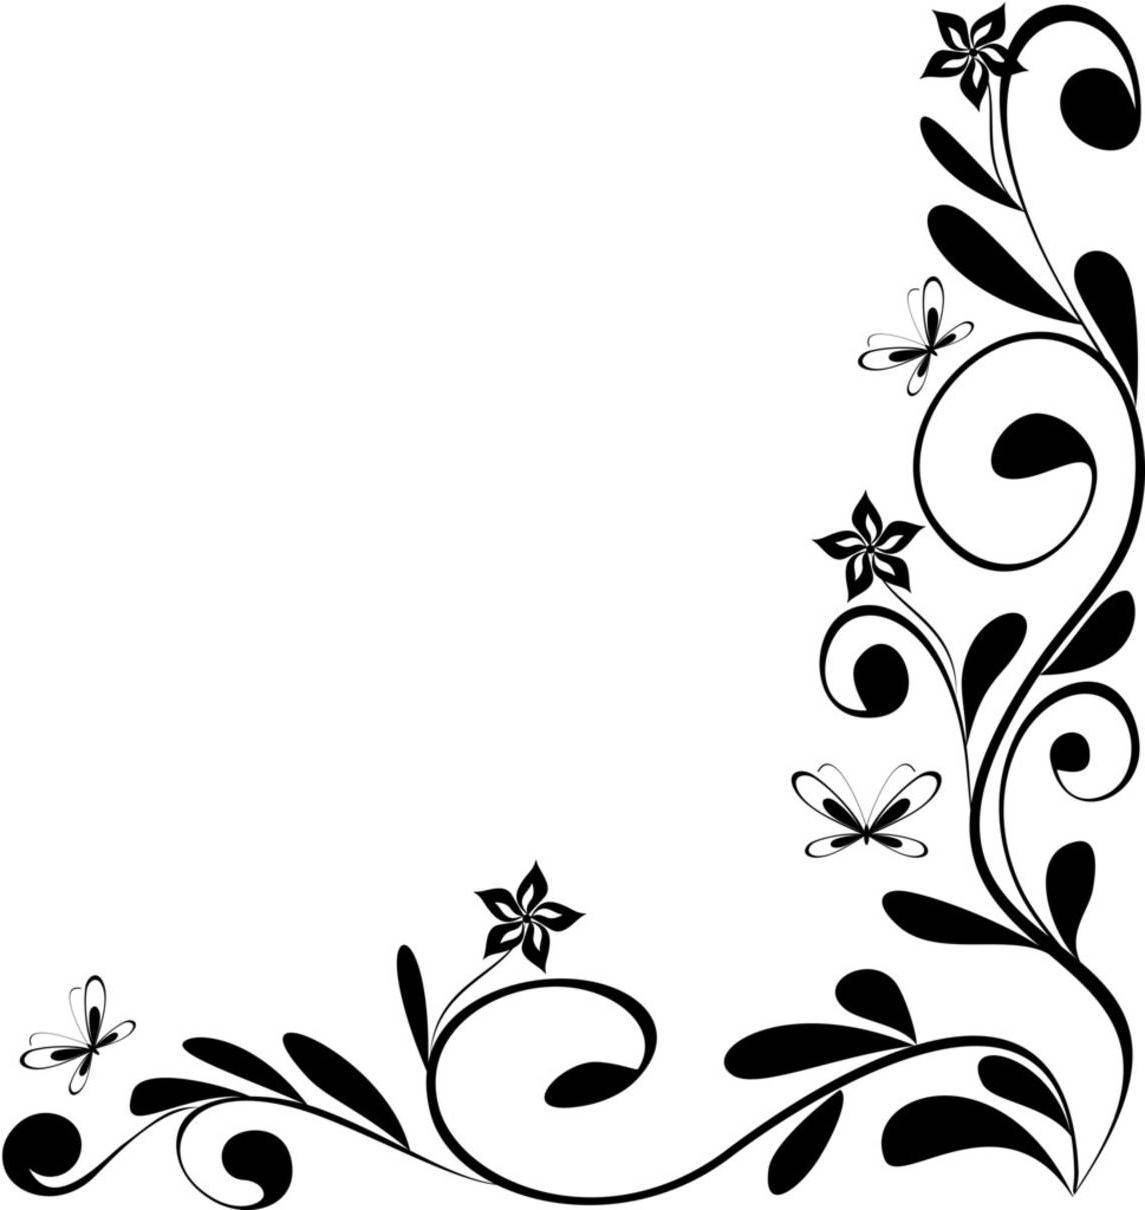 Design clipart hd graphic freeuse stock Corner Border Clipart - 55 cliparts graphic freeuse stock